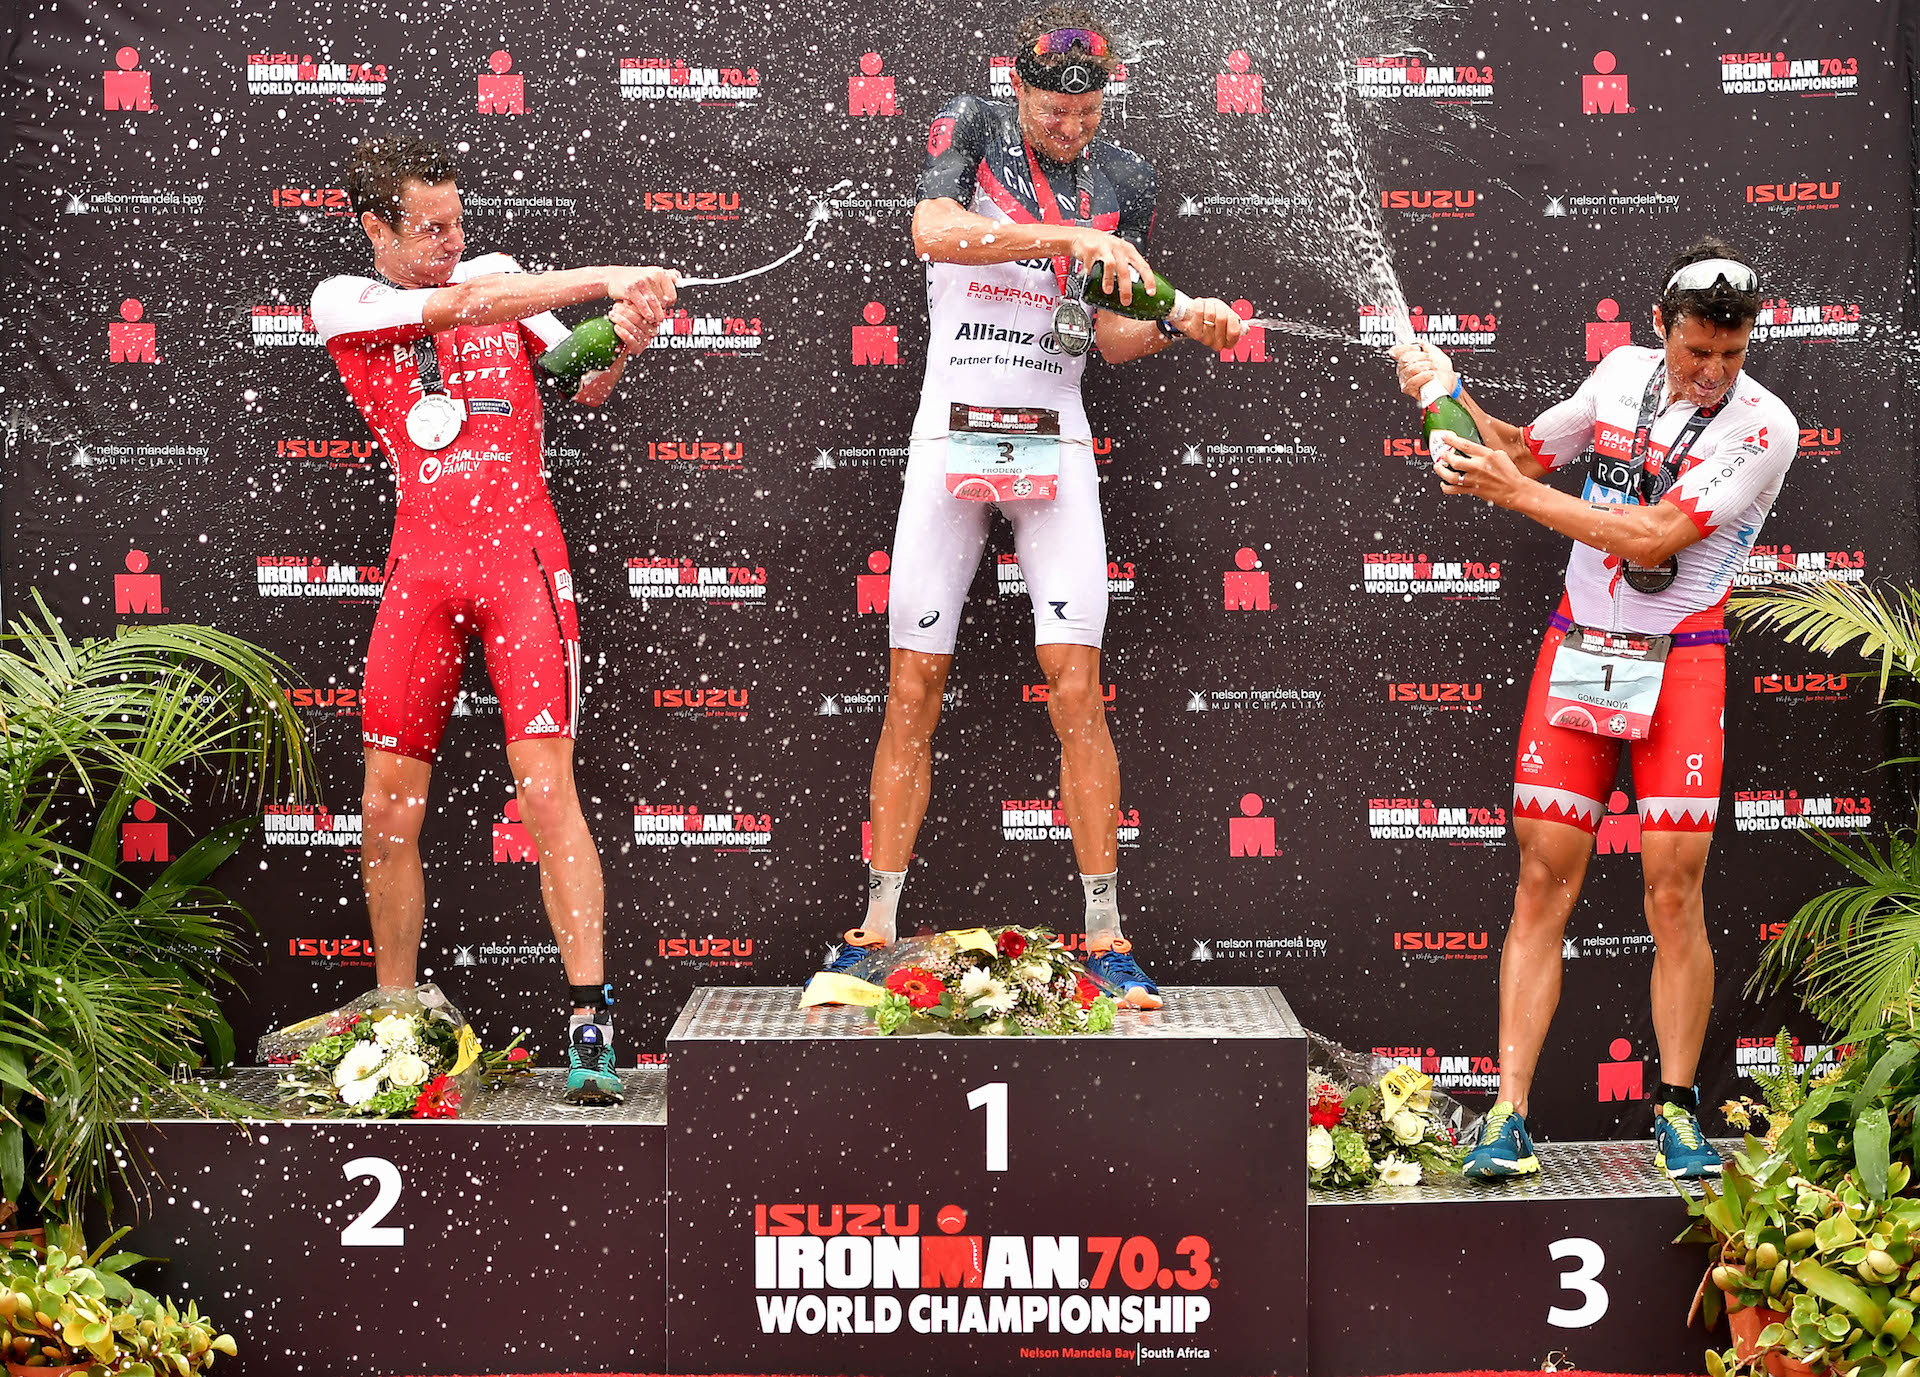 BIG MAN ON TOP: Jan Frodeno of Germany scored his second IRONMAN 70.3 World Championship after posting a time of 3:36:30  over second place Alistair Brownlee and third place Javier Gomez Noya (Photo by Donald Miralle/Getty Images for IRONMAN)